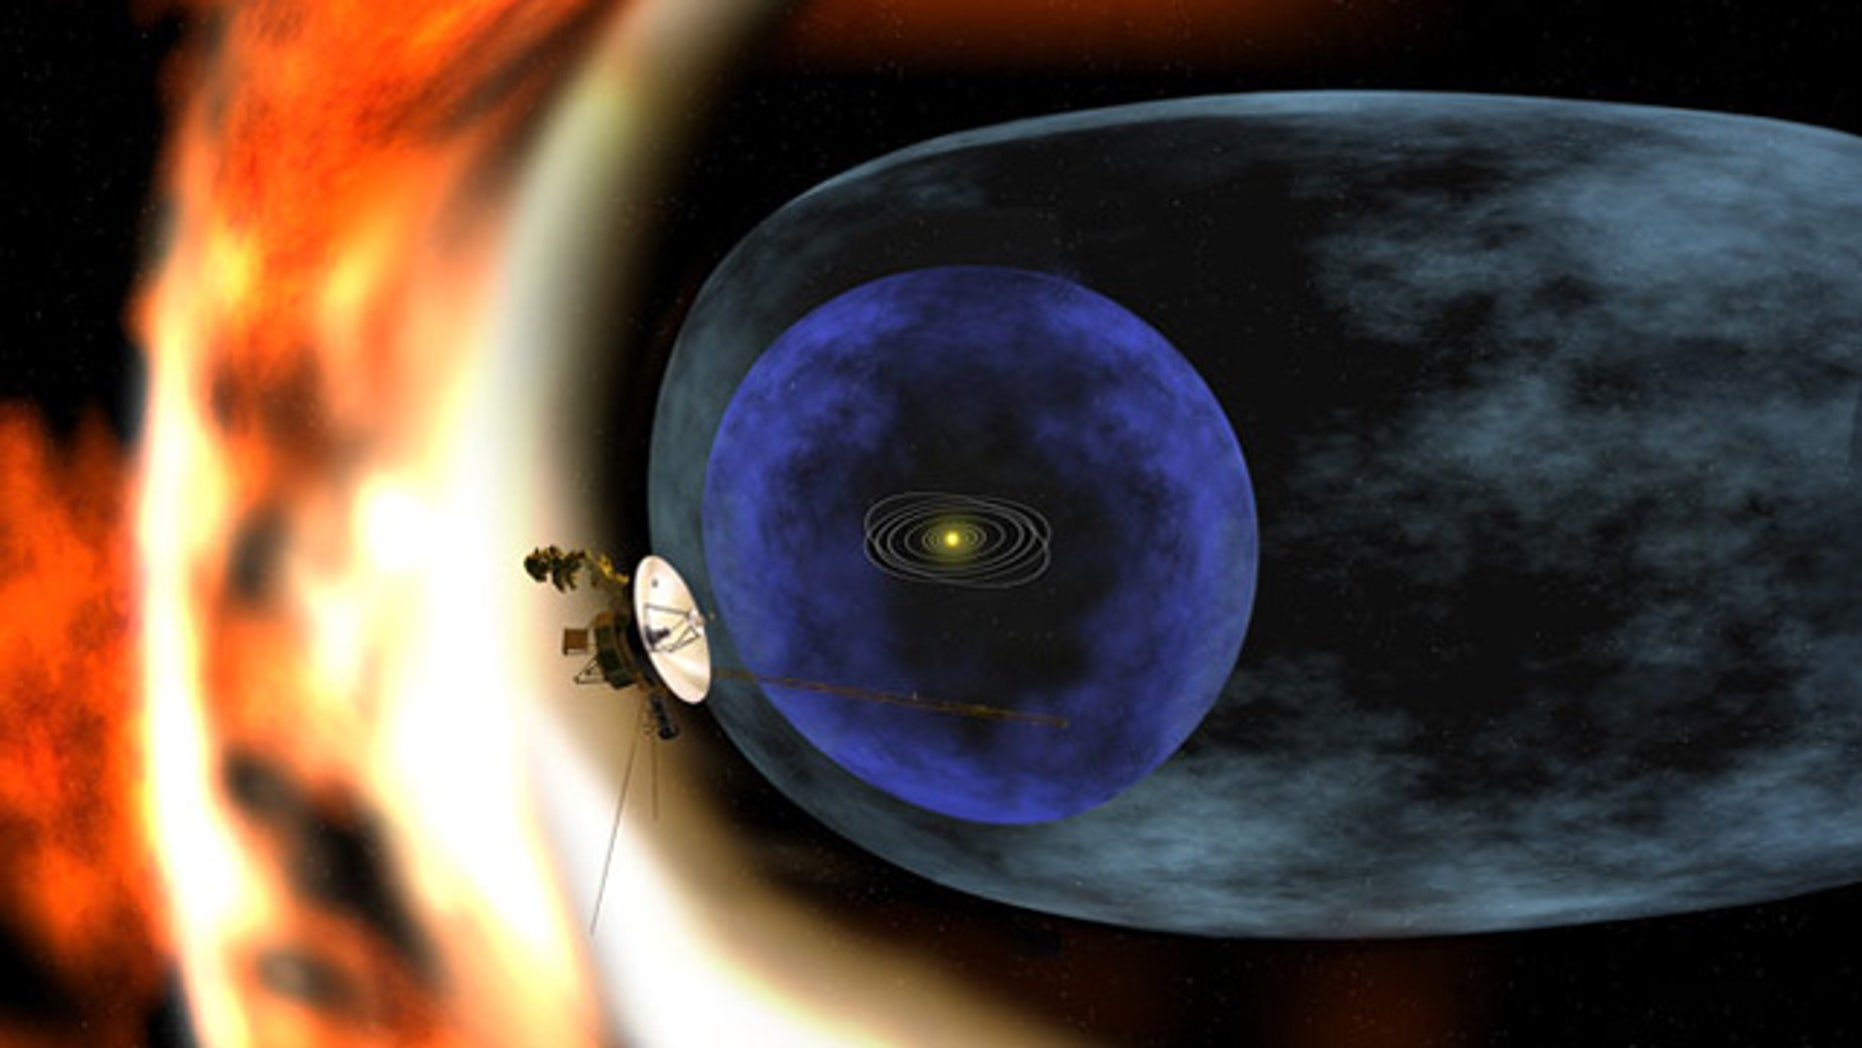 Artist's rendering of the Voyager 2 spacecraft as it studies the outer limits of the heliosphere — a magnetic 'bubble' around the Solar System that is created by the solar wind. Scientists observed the magnetic bubble is not spherical, but pressed inward in the southern hemisphere.